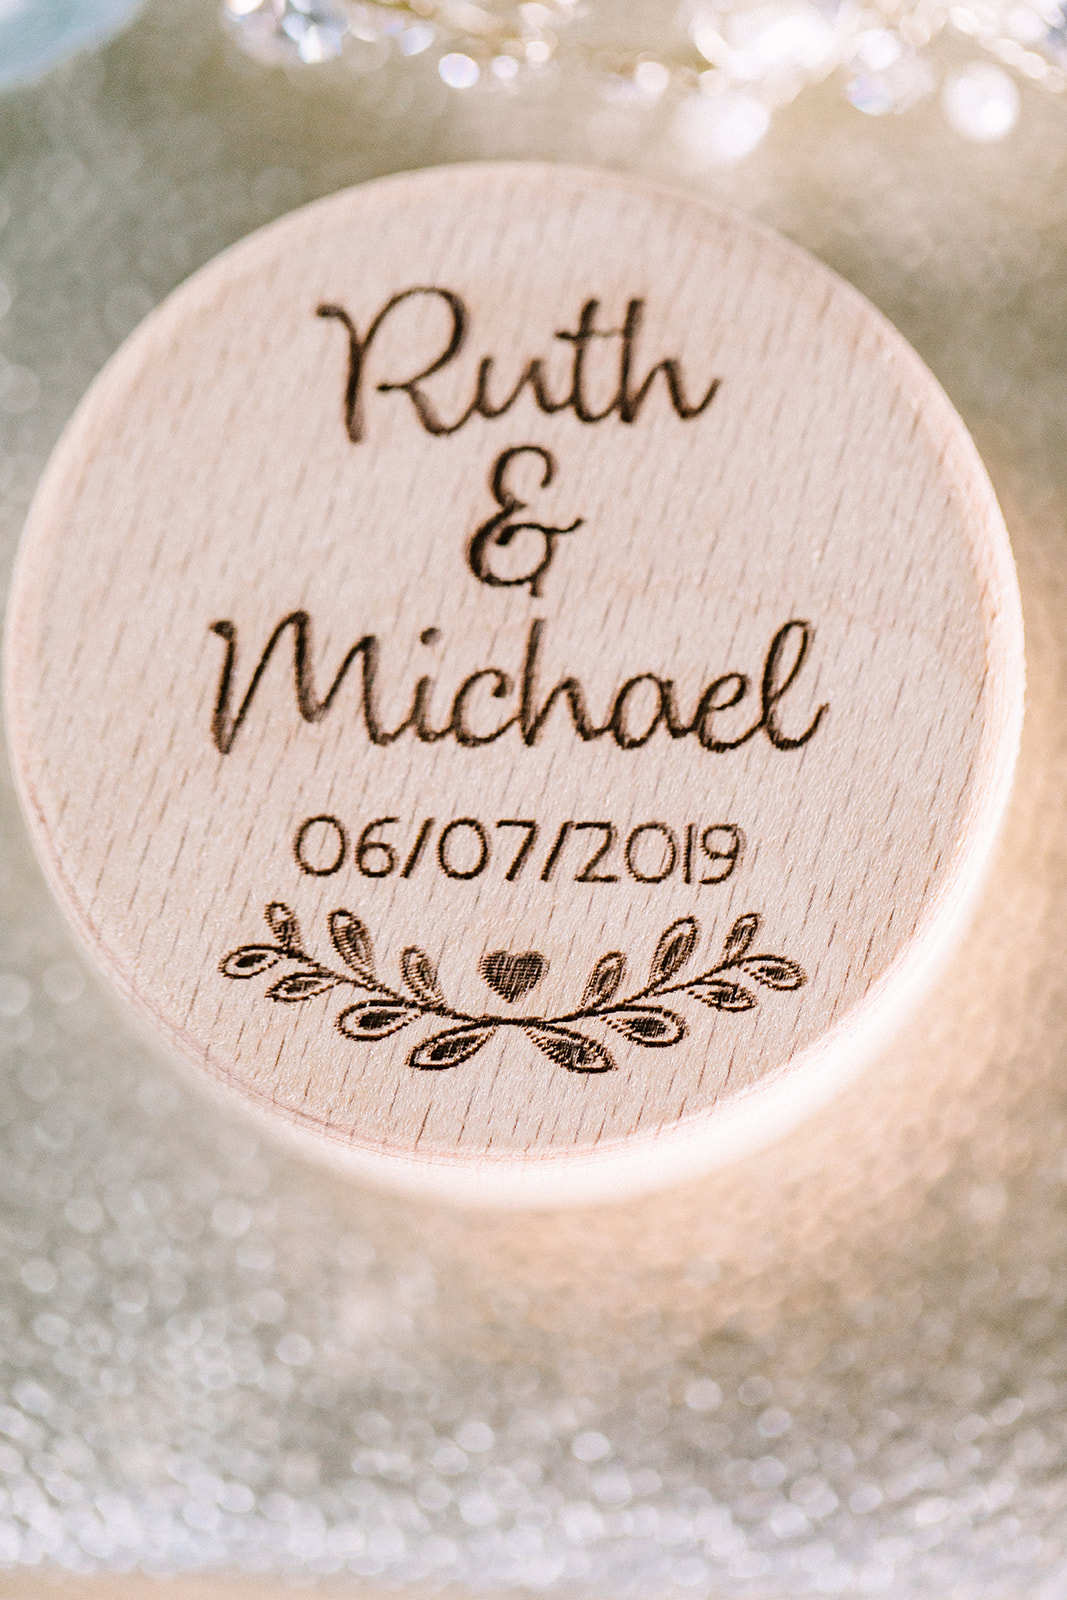 ruth and michael 30